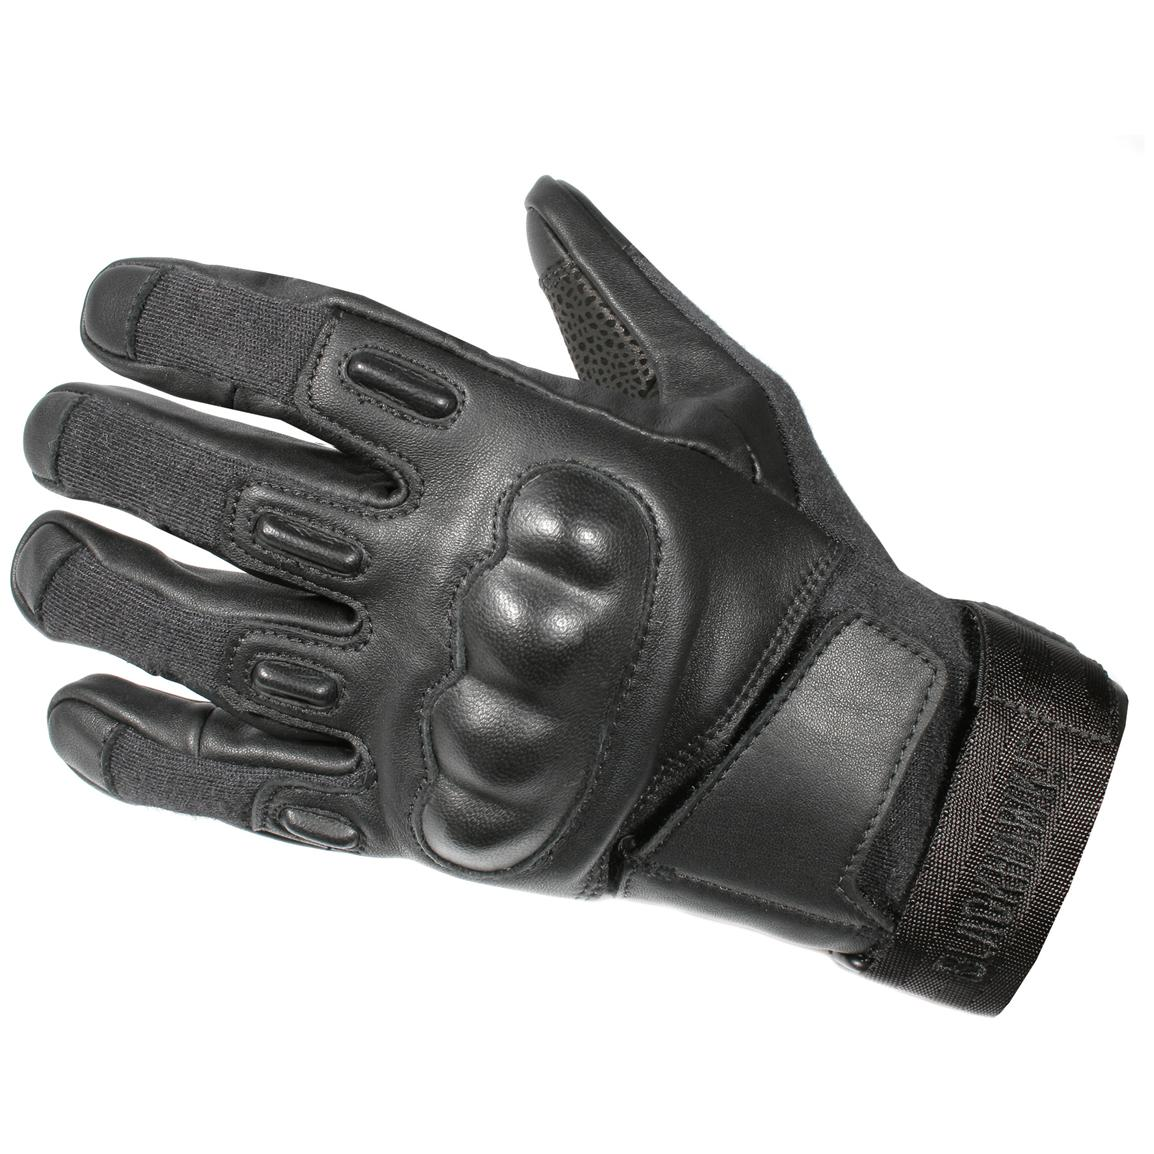 Blackhawk!® S.O.L.A.G. HD Gloves with Kevlar®, Black